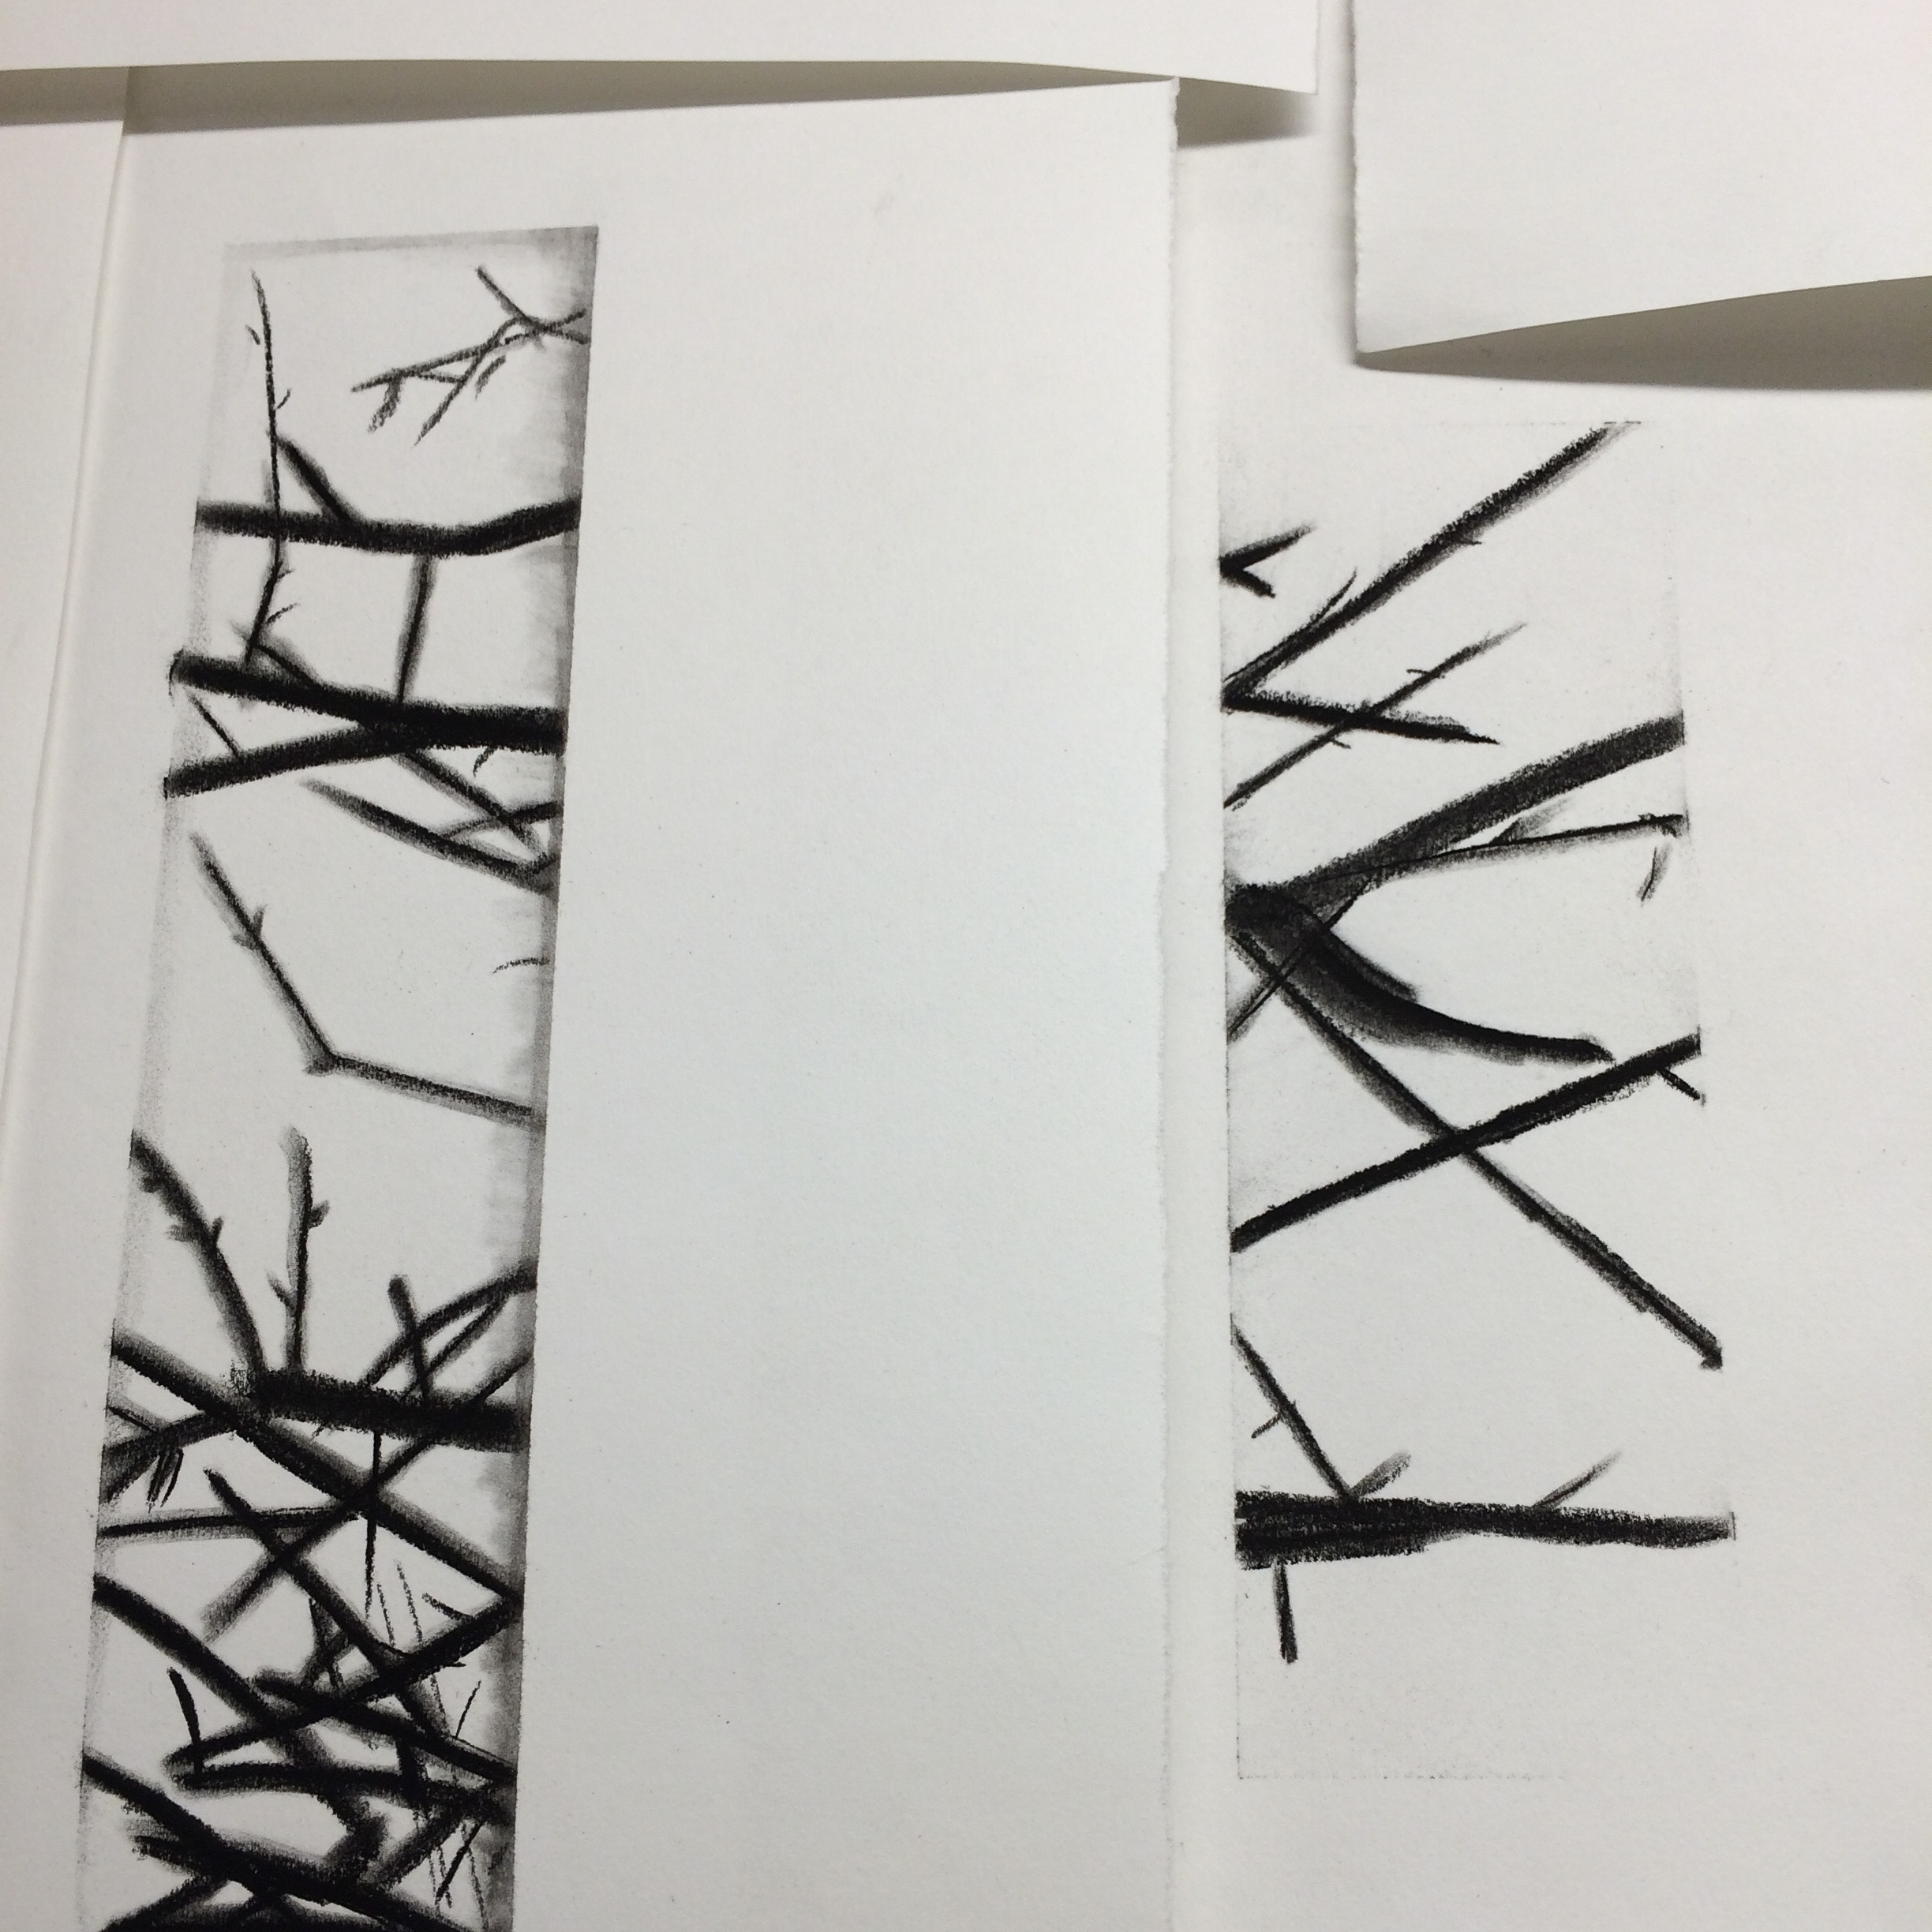 Hedge drawings - charcoal